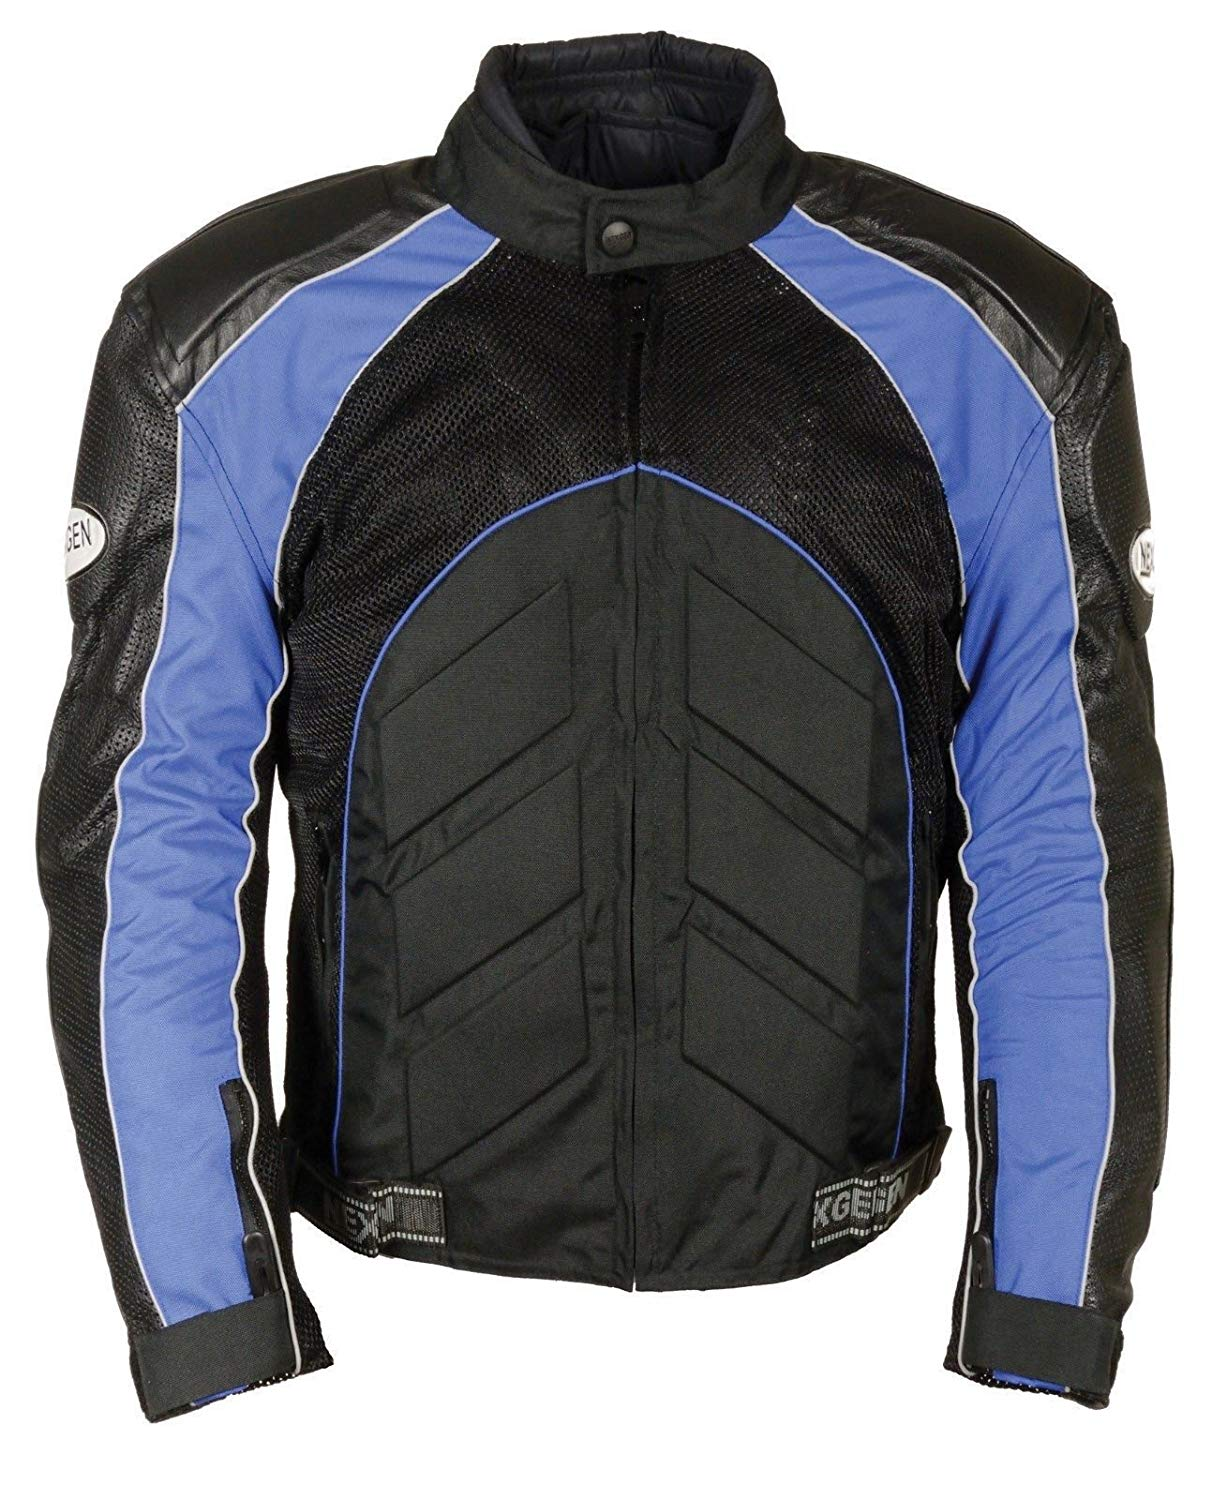 Shaf MEN'S MOTORCYCLE PERFORATED LEATHER & MESH RACER JACKET W/ARMOUR PROTECTION RED (L Blue)